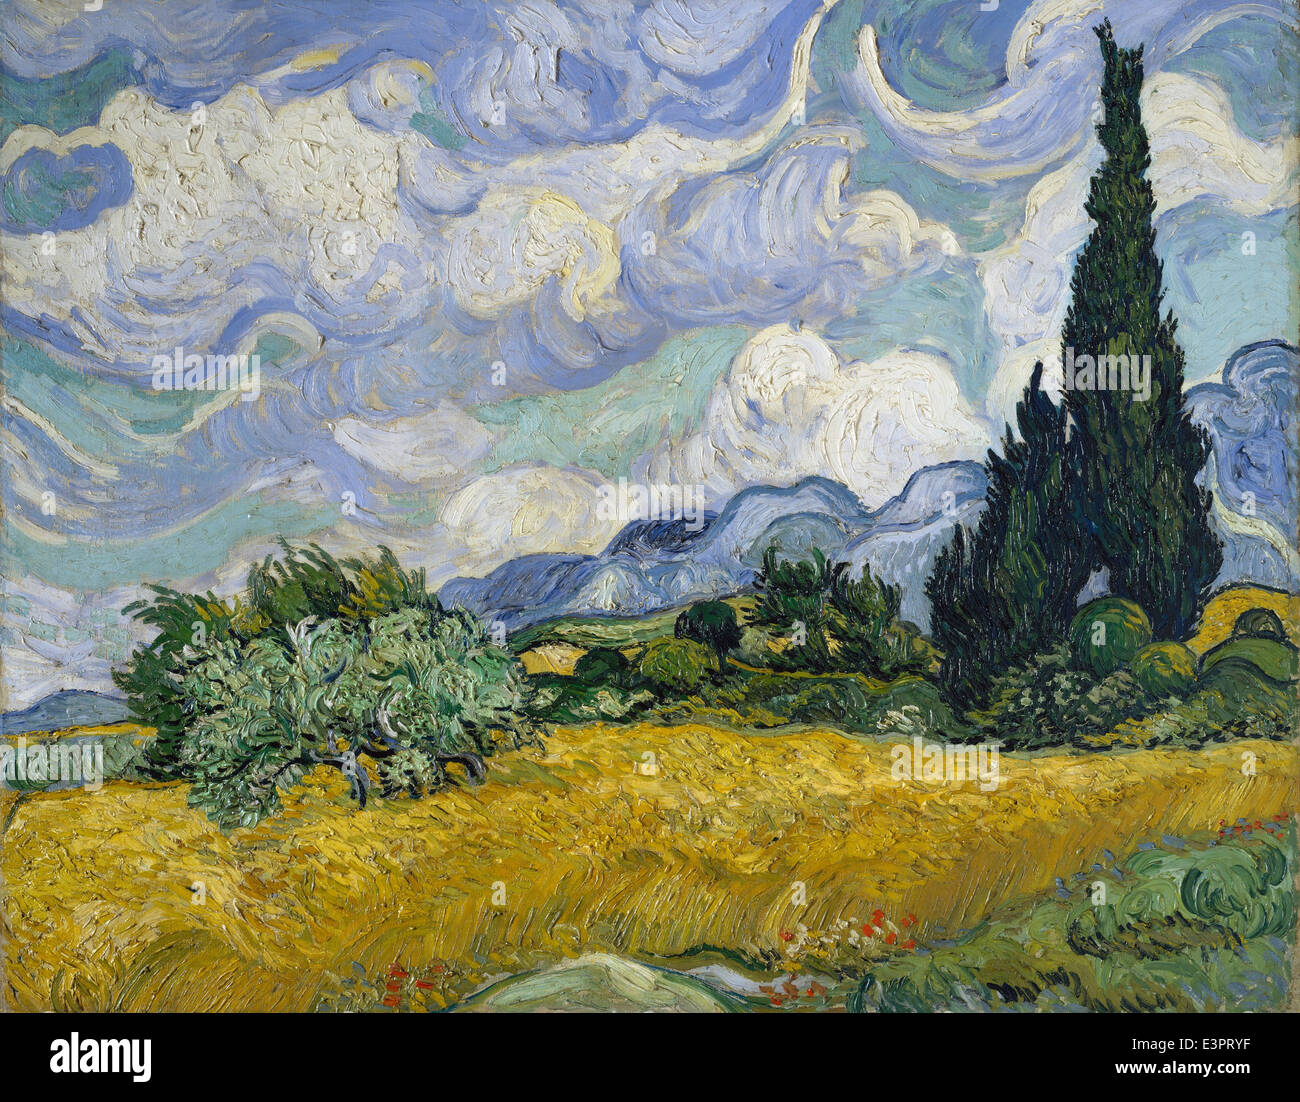 1889 By Gogh Stock Photos & 1889 By Gogh Stock Images Page